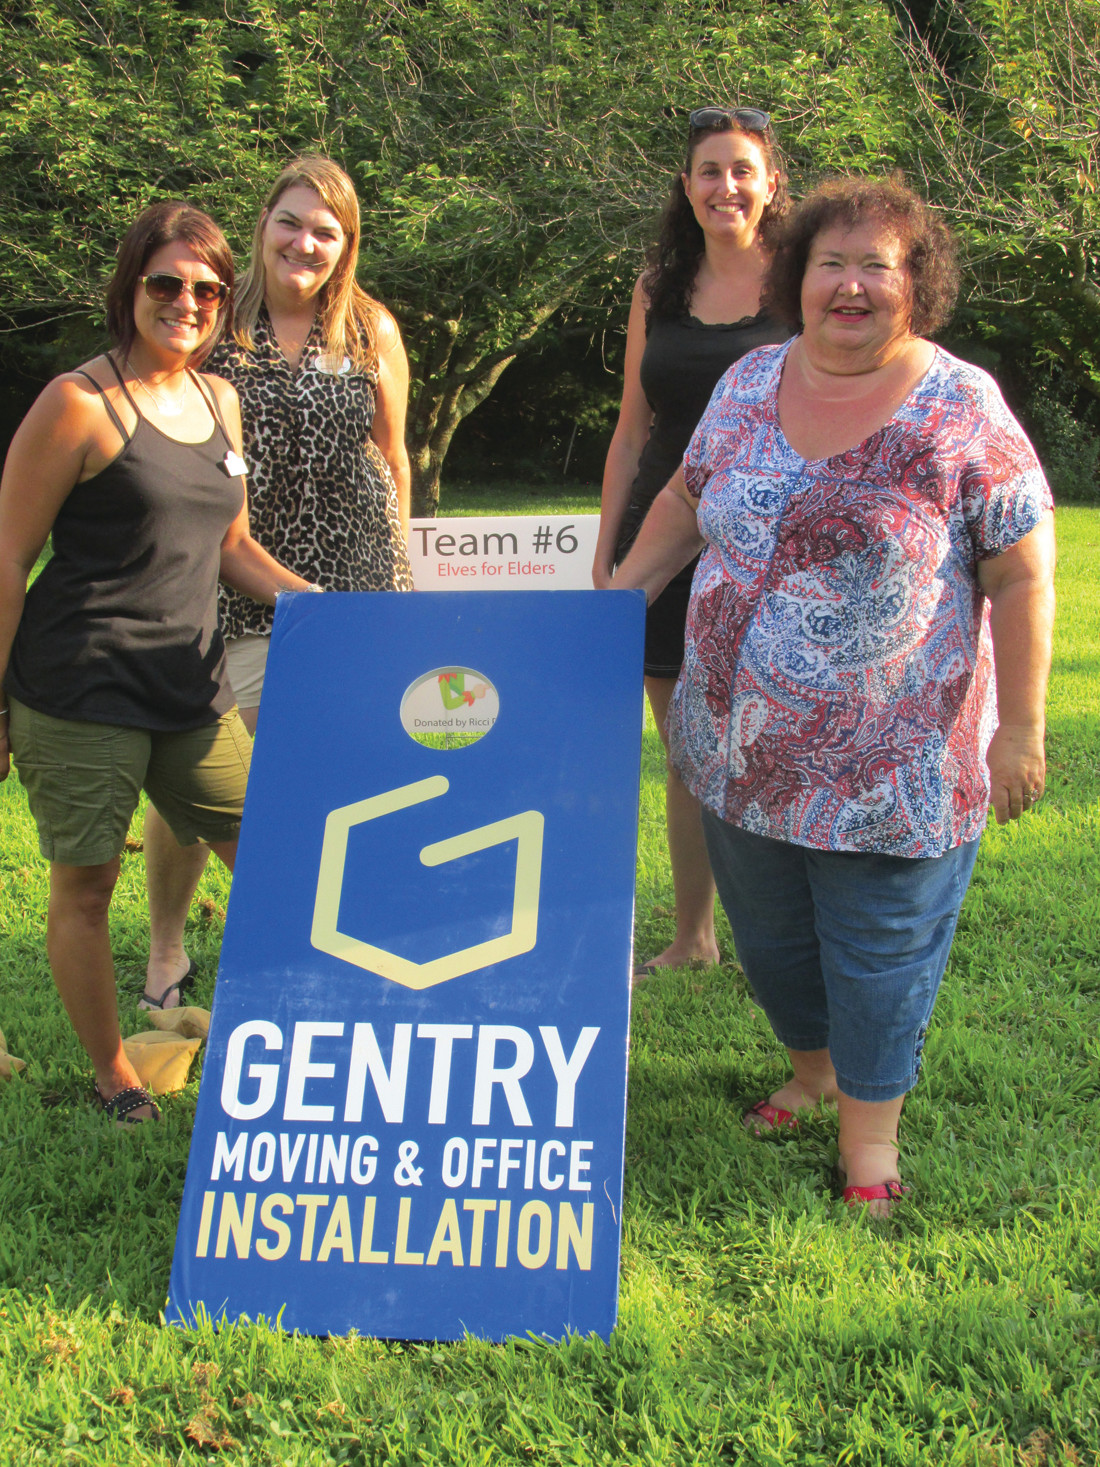 CRUM'S CREW: Gentry Moving & Storage was the proud sponsor of this board featured in last week's cornhole game that netted $808 for Elves for Elders. Players in the 20-team field included Jen Burns, Tracy Cale, Christine Crum and Maxine Hutchins. (Sun Rise photos by Pete Fontaine)